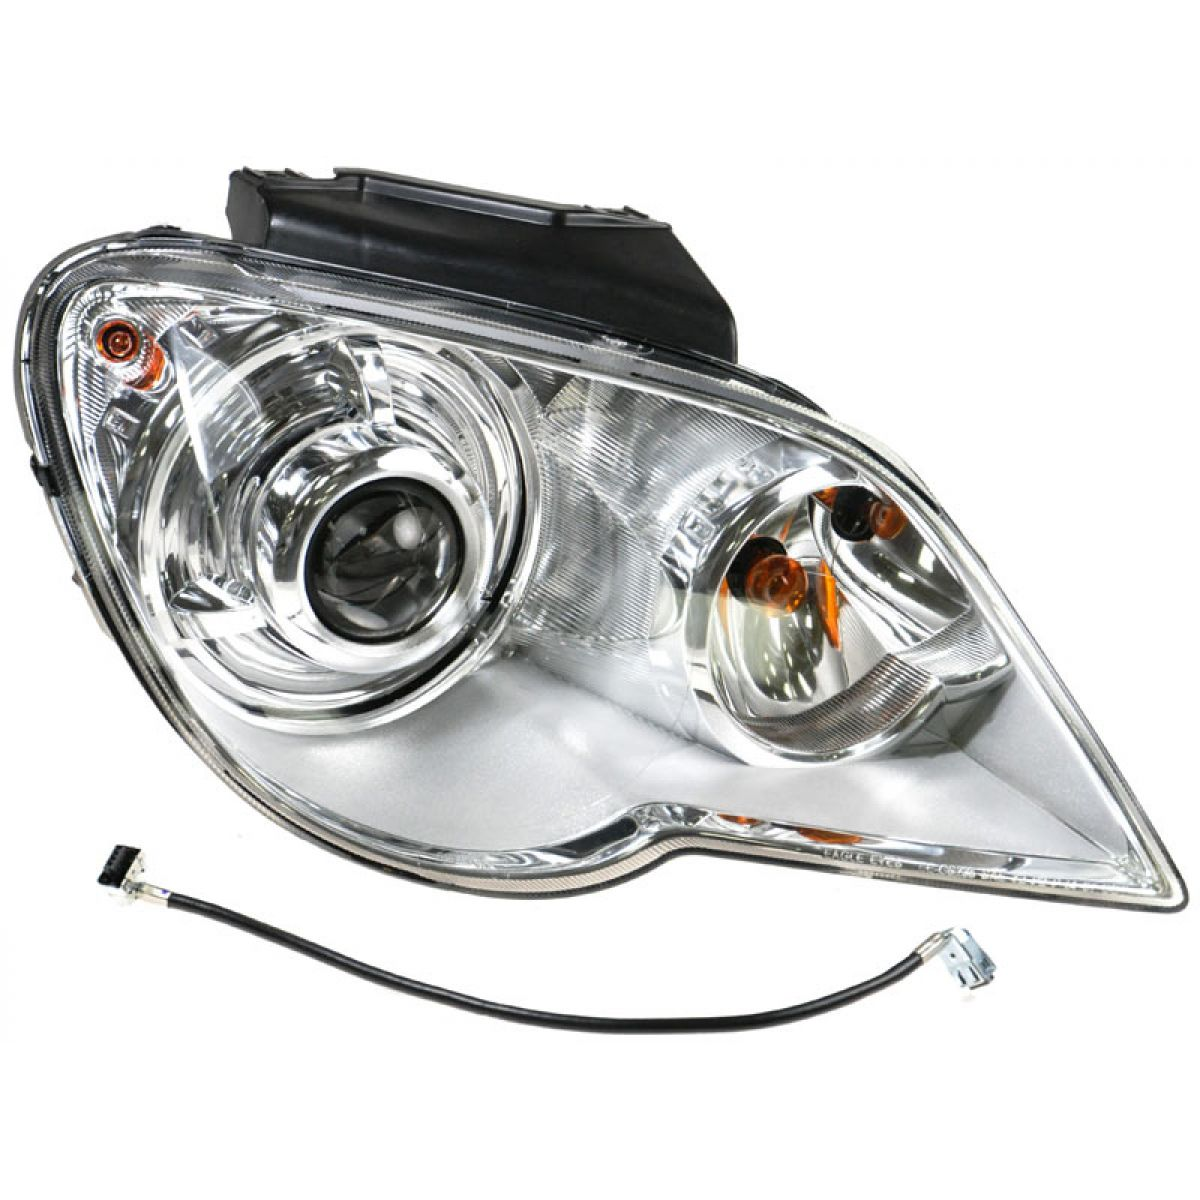 hid xenon headlight headlamp passenger side right rh for. Black Bedroom Furniture Sets. Home Design Ideas